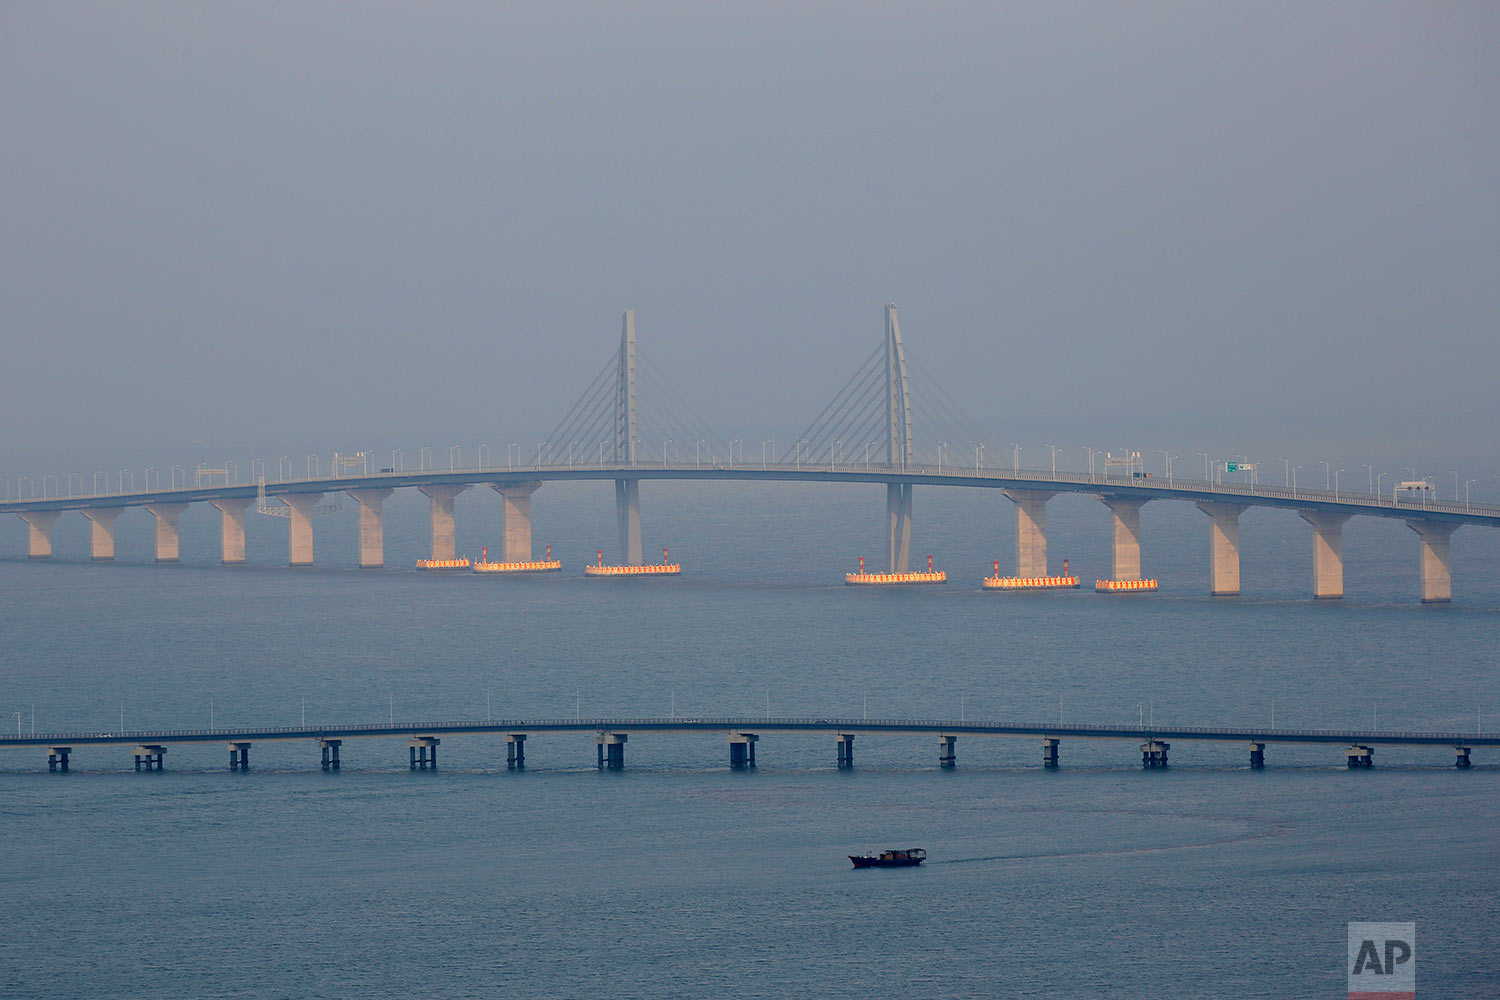 The Hong Kong-Zhuhai-Macau Bridgeis seen during the first day operation of the world's longest cross-sea project, which has a total length of 55 kilometers (34 miles), in Macau, Oct. 24, 2018. (AP Photo/Kin Cheung)